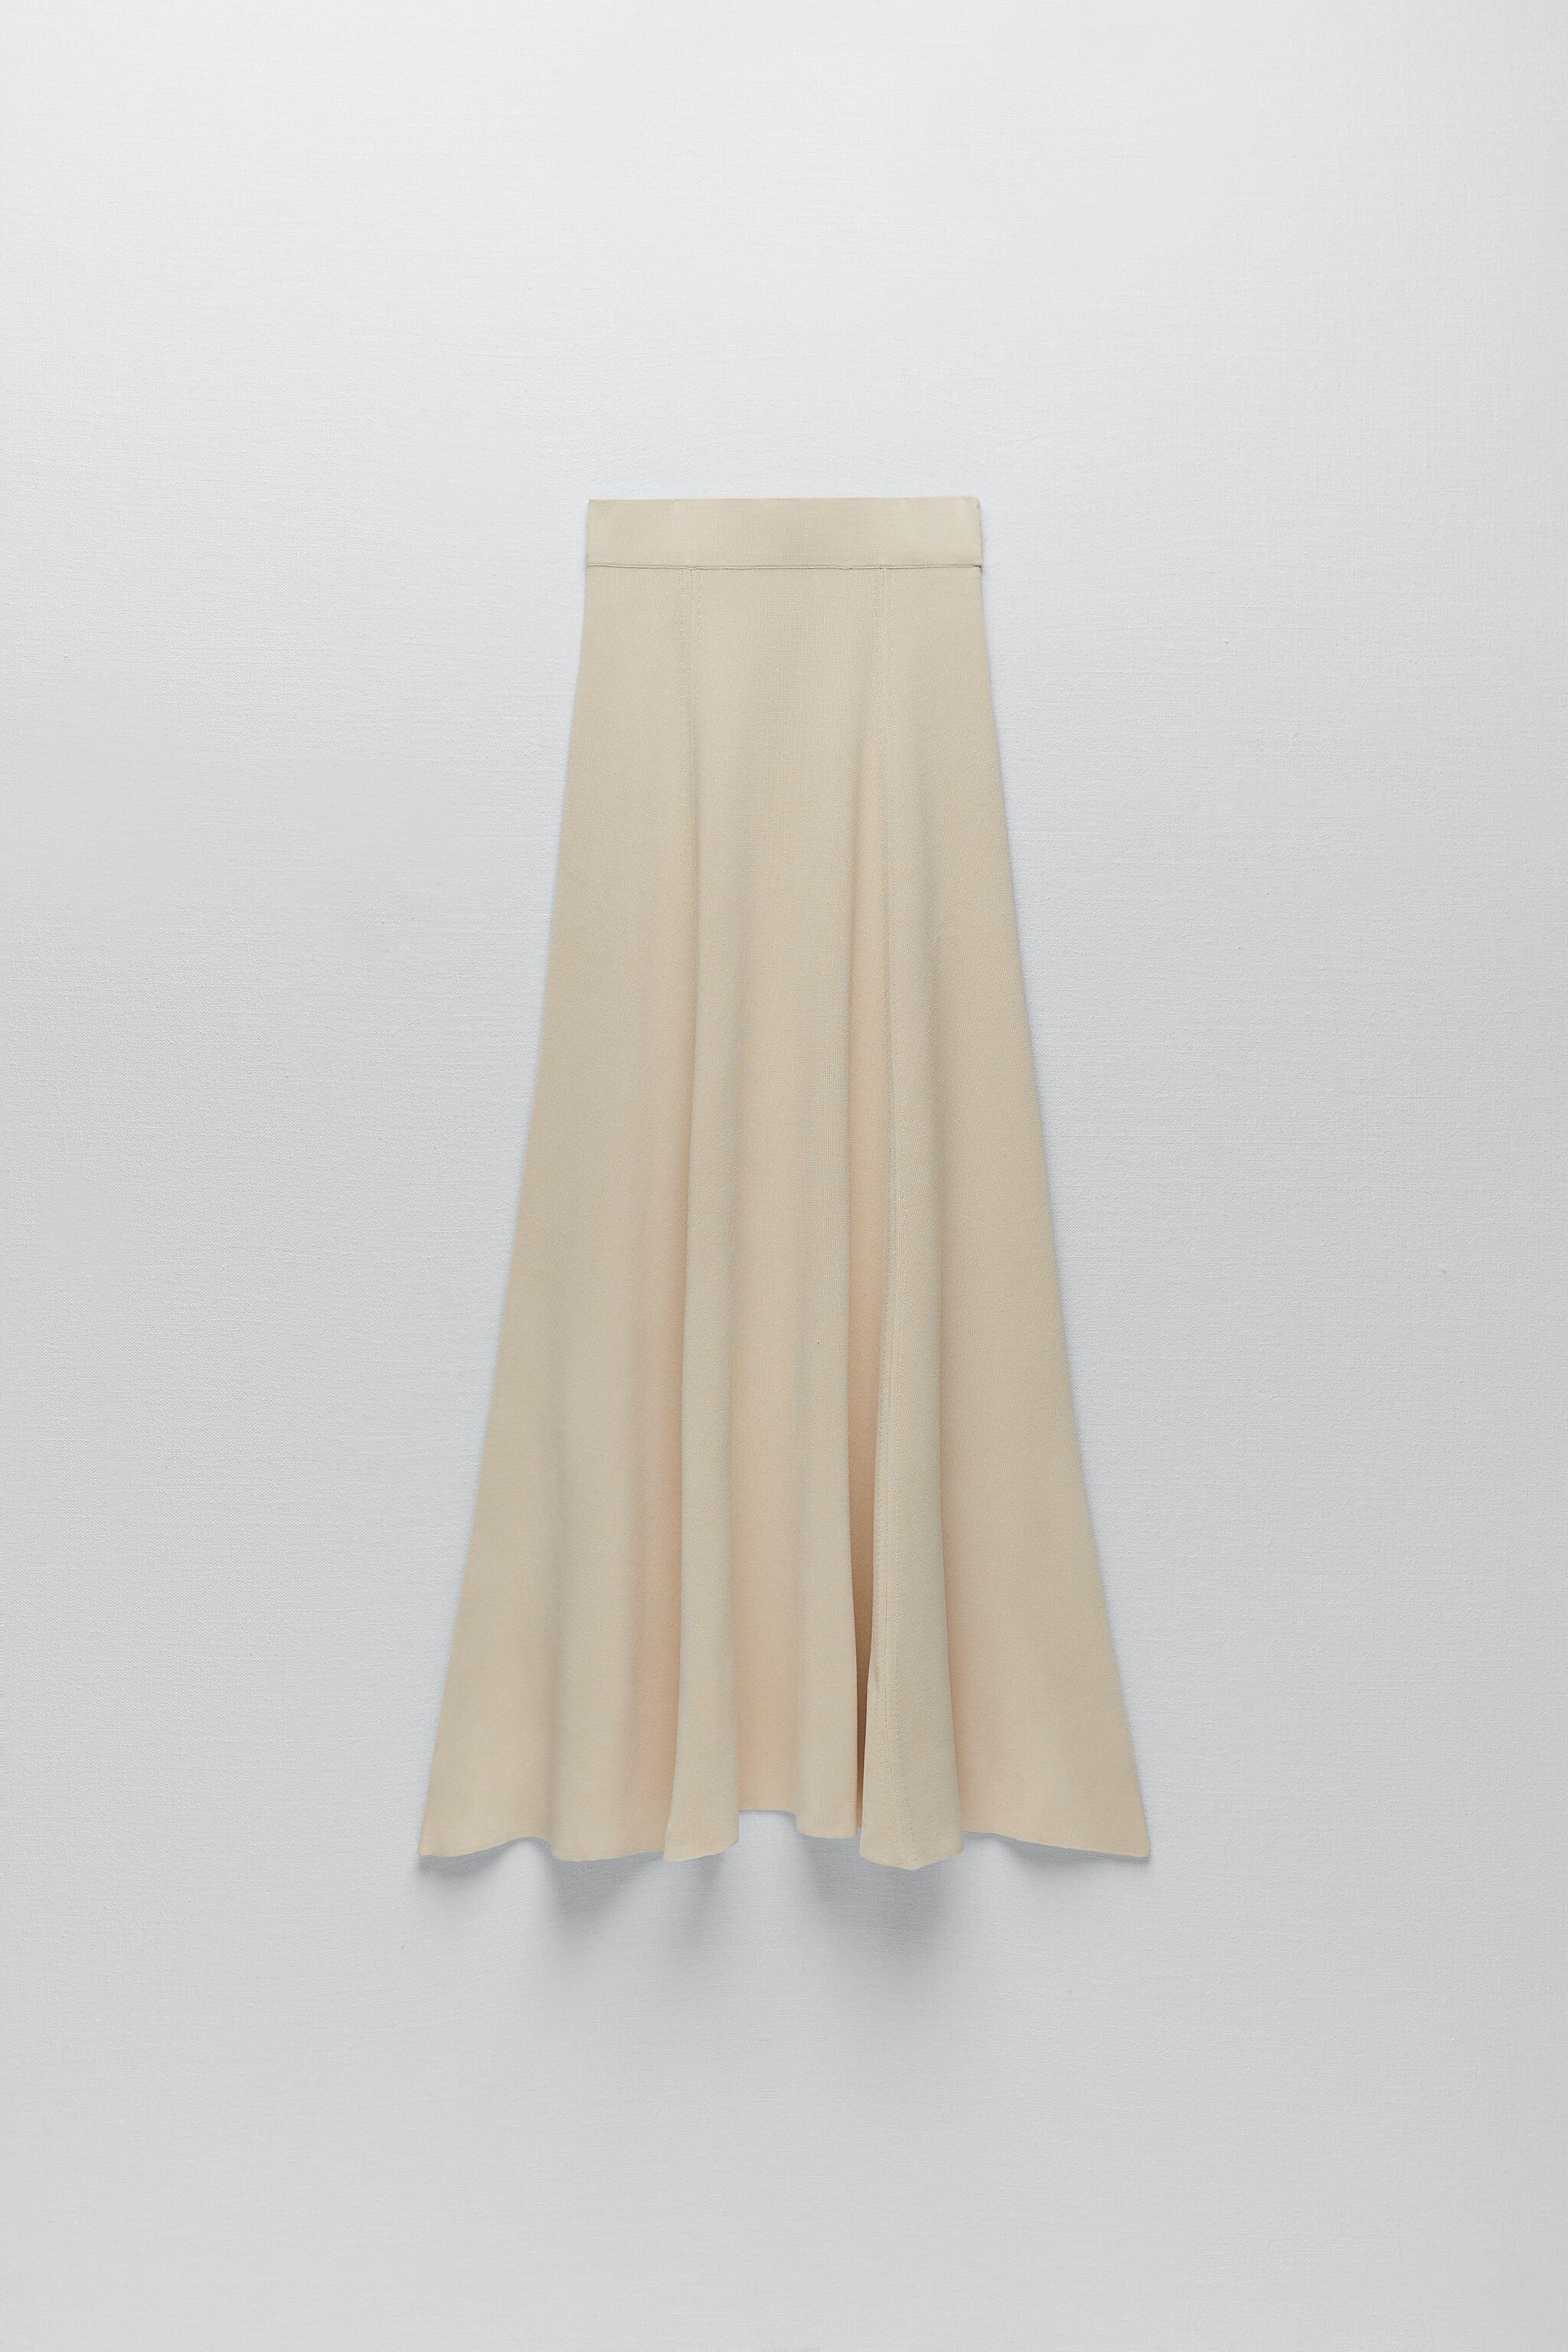 LONG KNIT SKIRT LIMITED EDITION 2